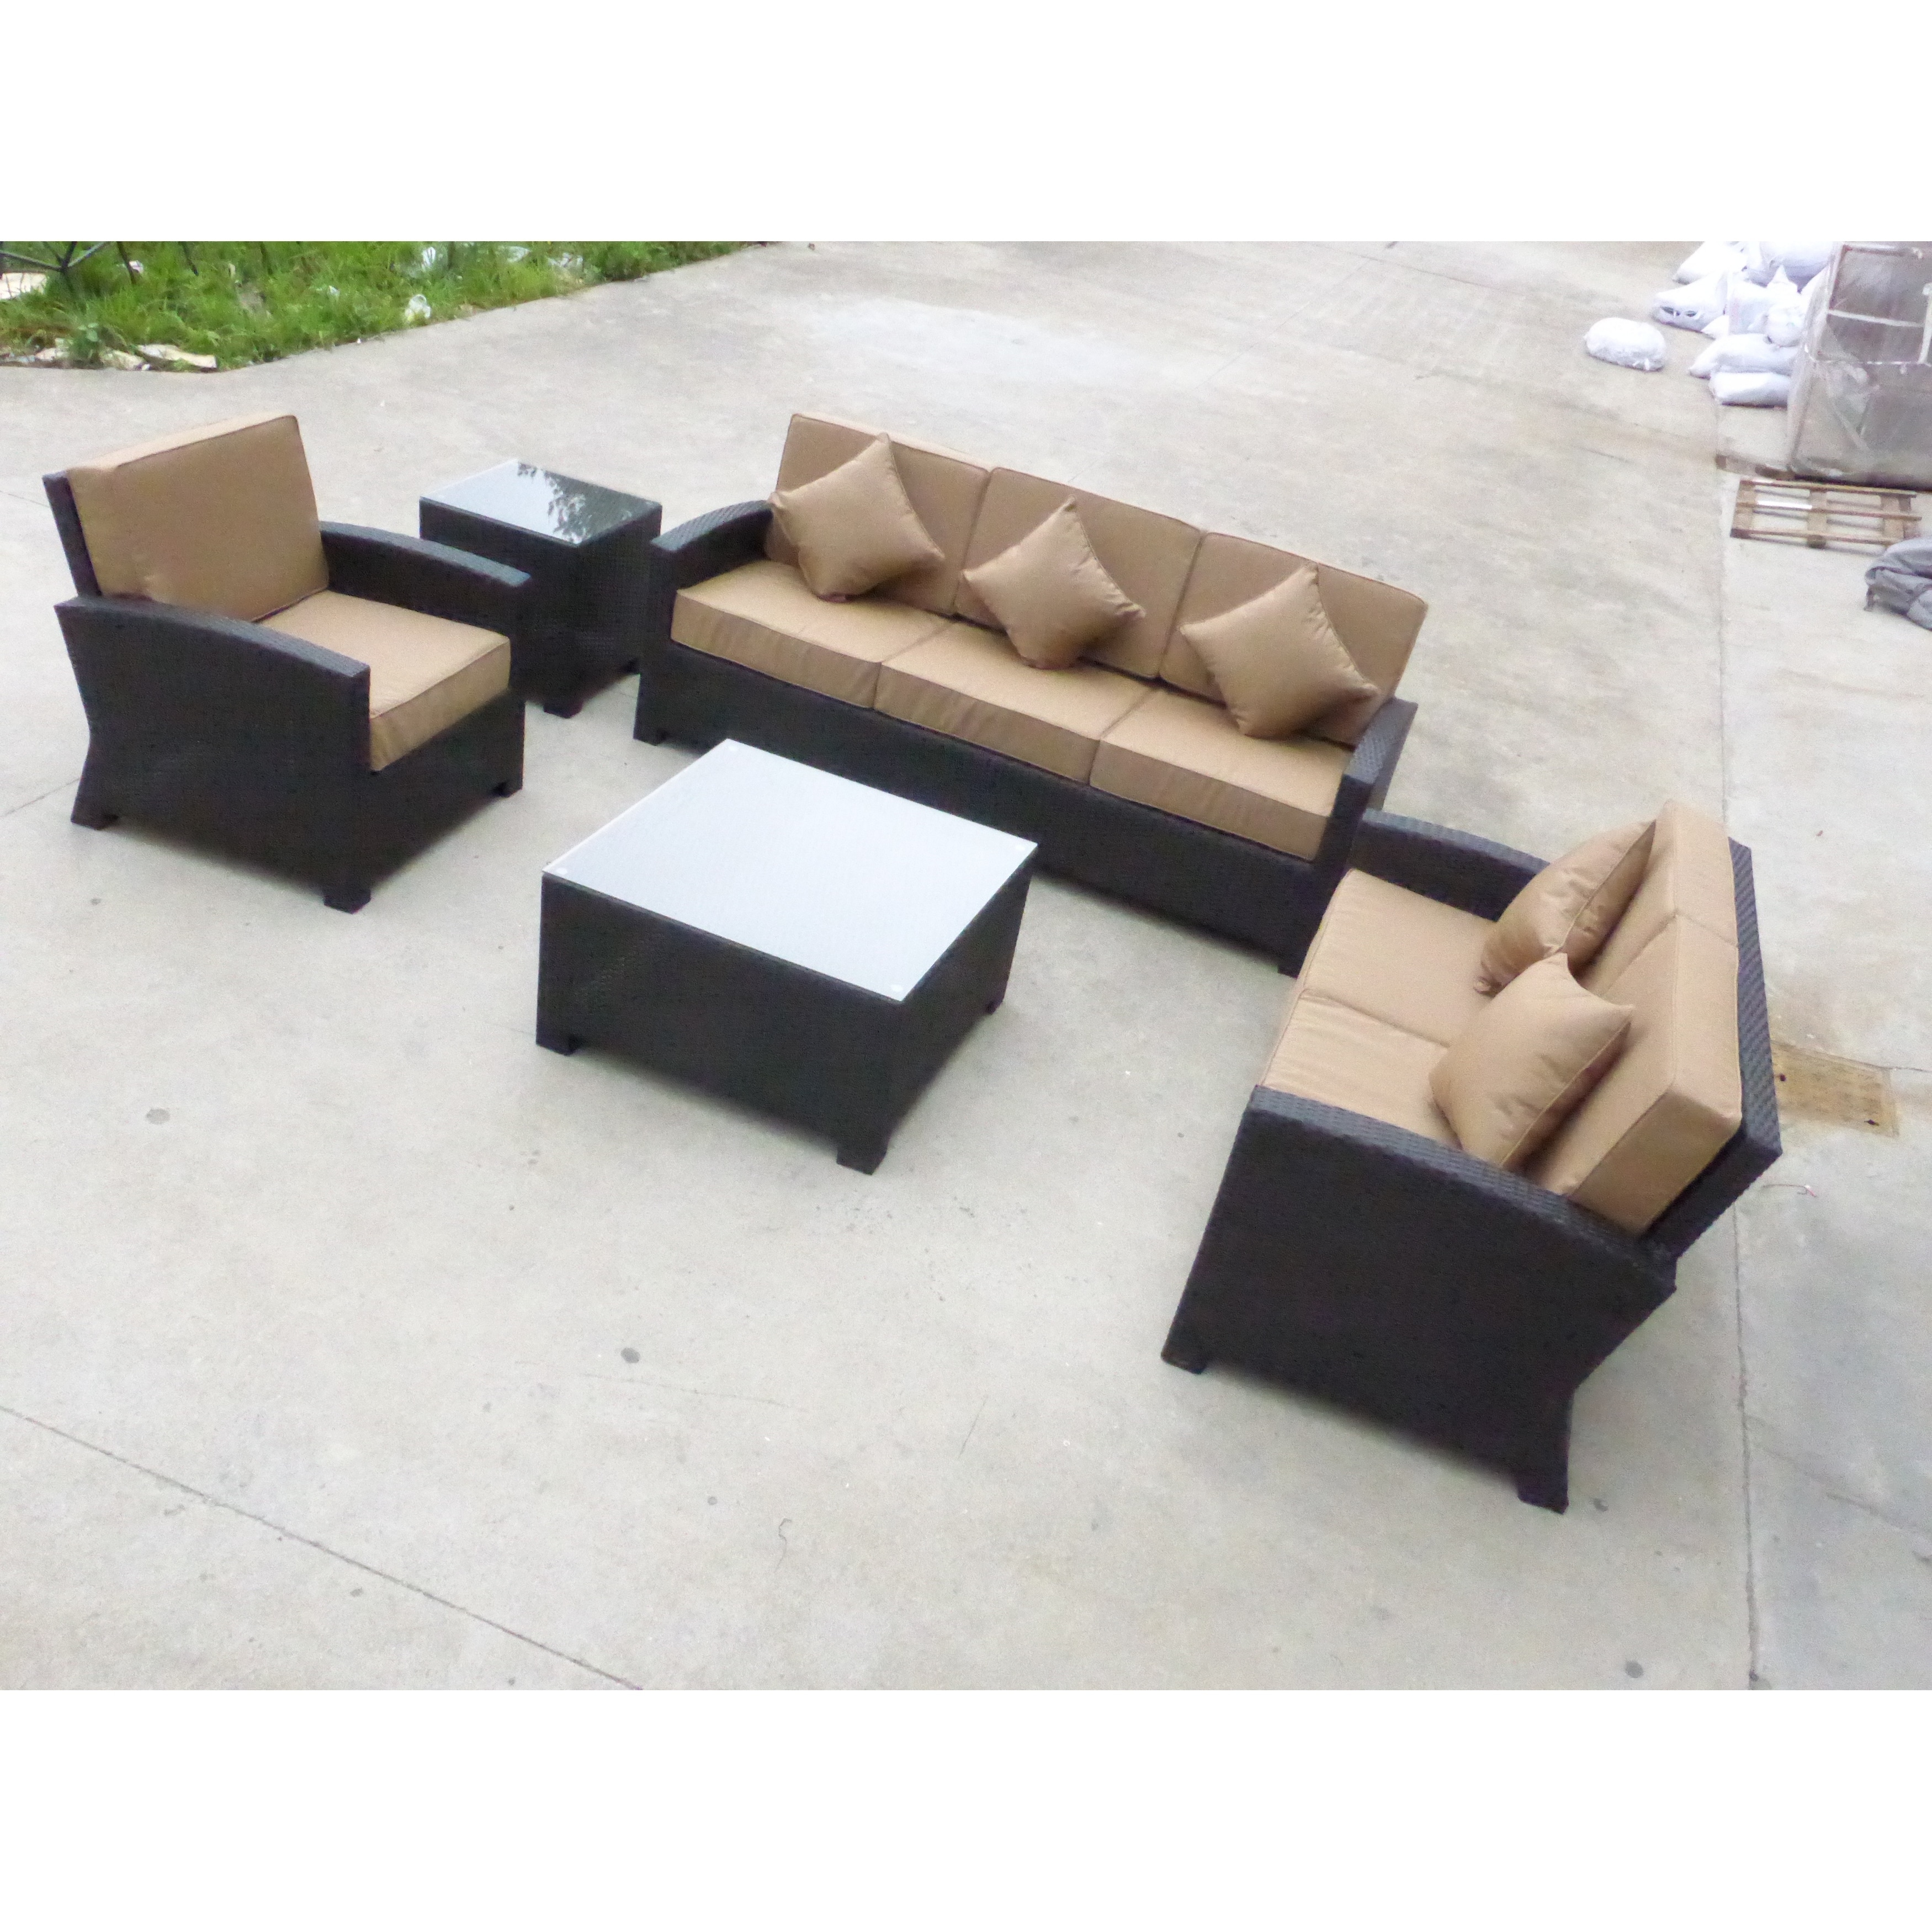 Shop 6pc New Baltimore Resin Wicker Outdoor Patio Furniture Seating Group.    Free Shipping Today   Overstock.com   17236827